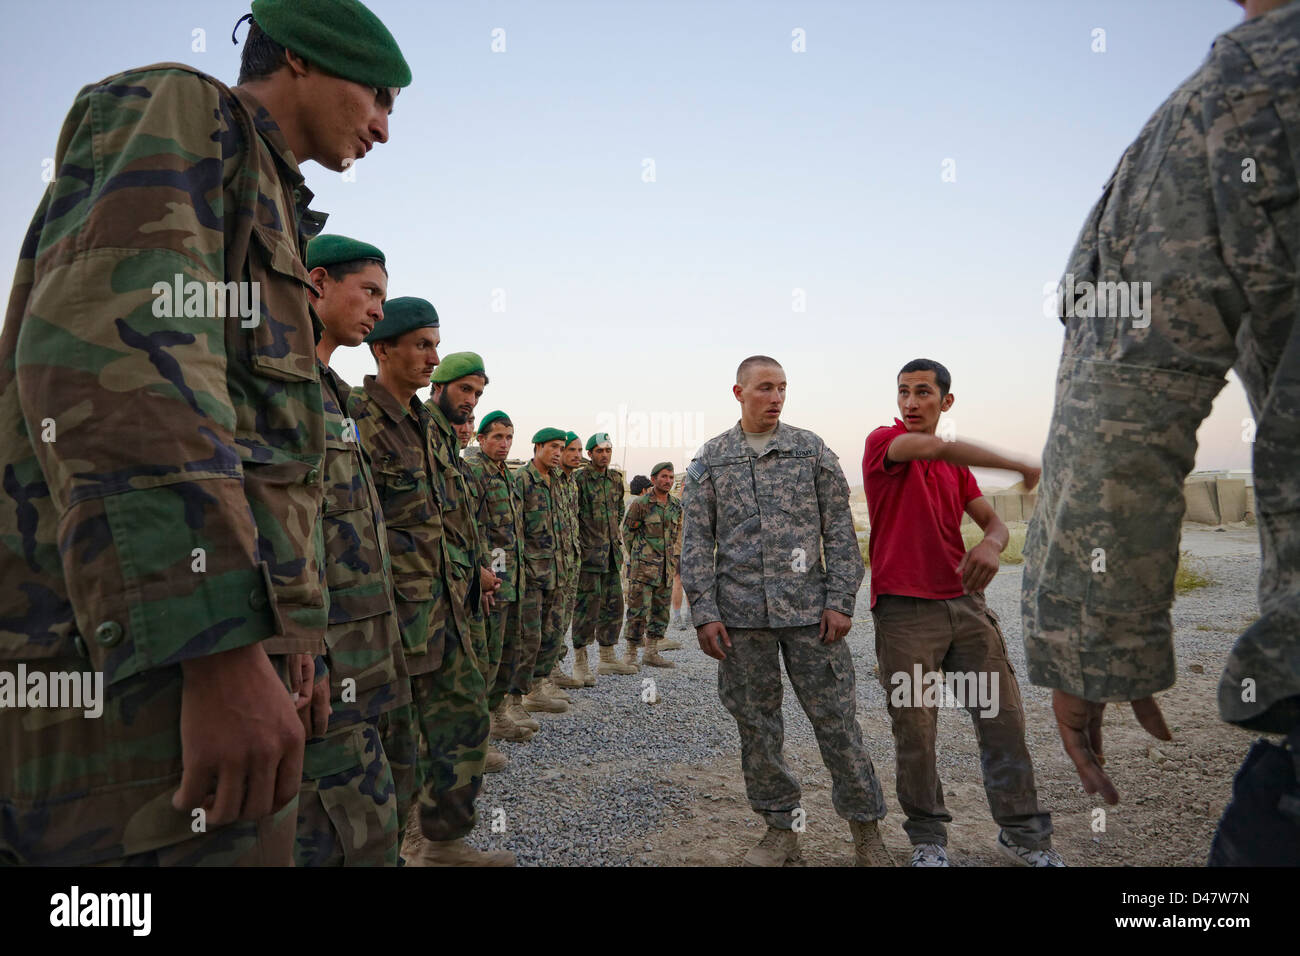 Kandahar, Afghanistan - September 24, 2010:  ANA Soldiers line up to receive training from US Soldiers. - Stock Image